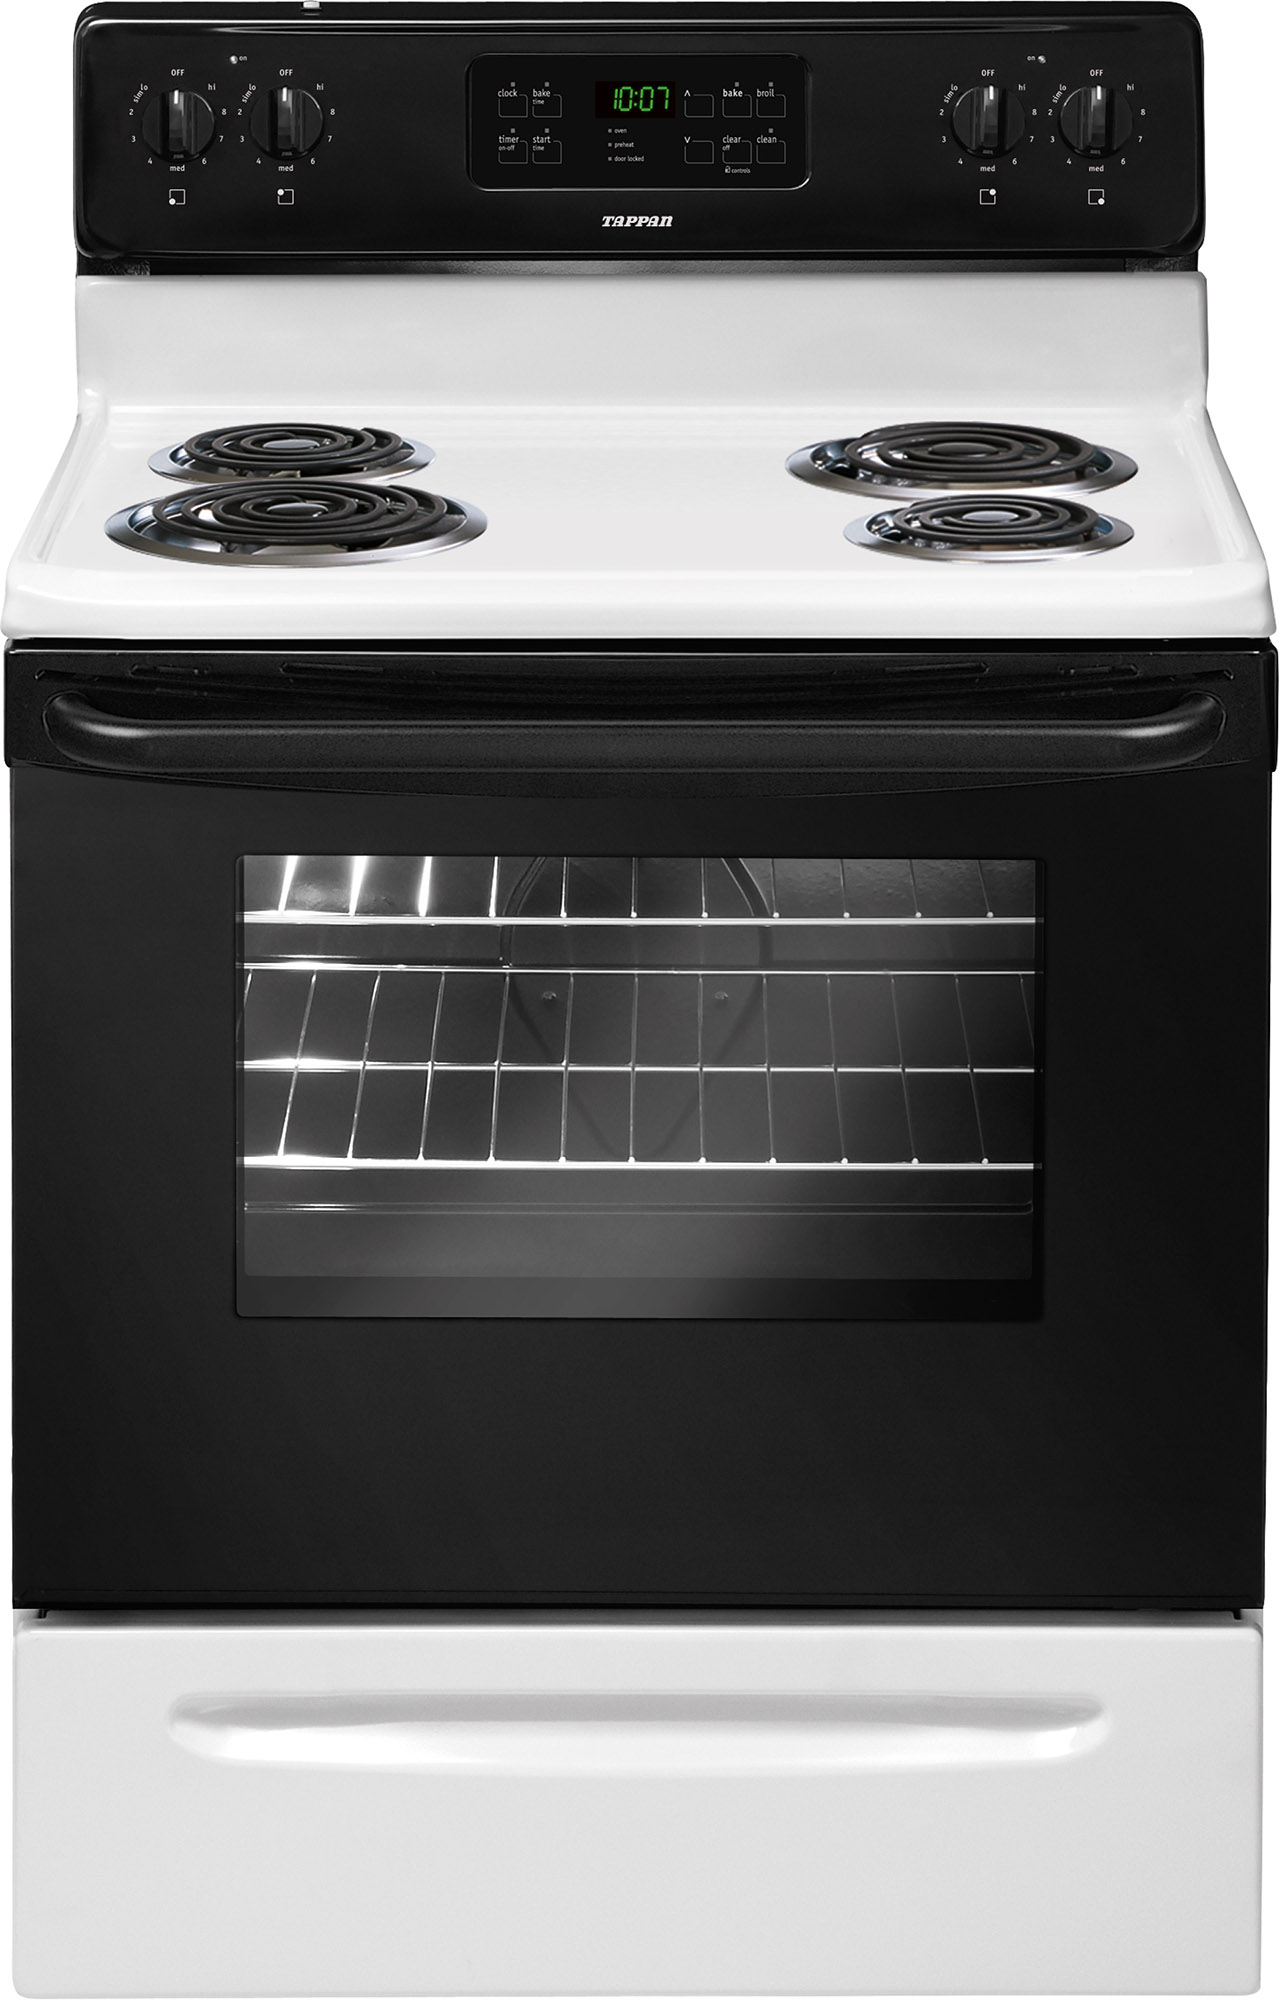 Tappan Range/Stove/Oven Model TEF351EWJ Parts